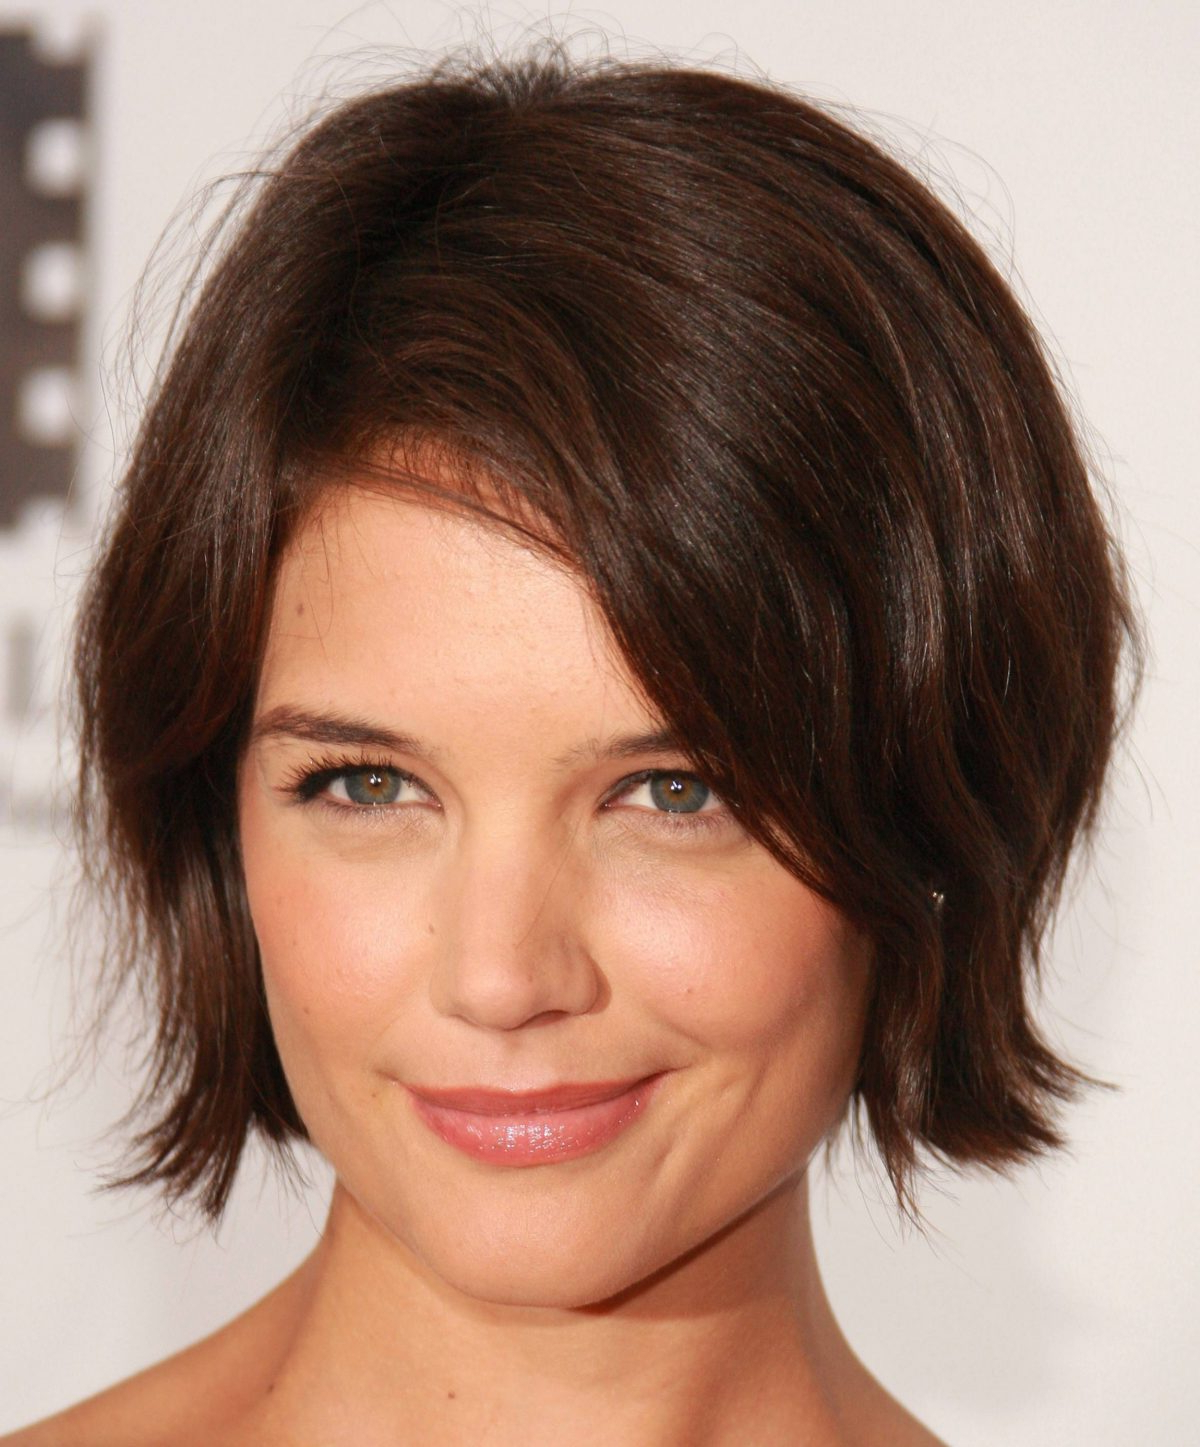 Best Short Hairstyles – Cute Hair Cut Guide For Round Face Shape For Women Short Haircuts For Round Faces (View 8 of 25)